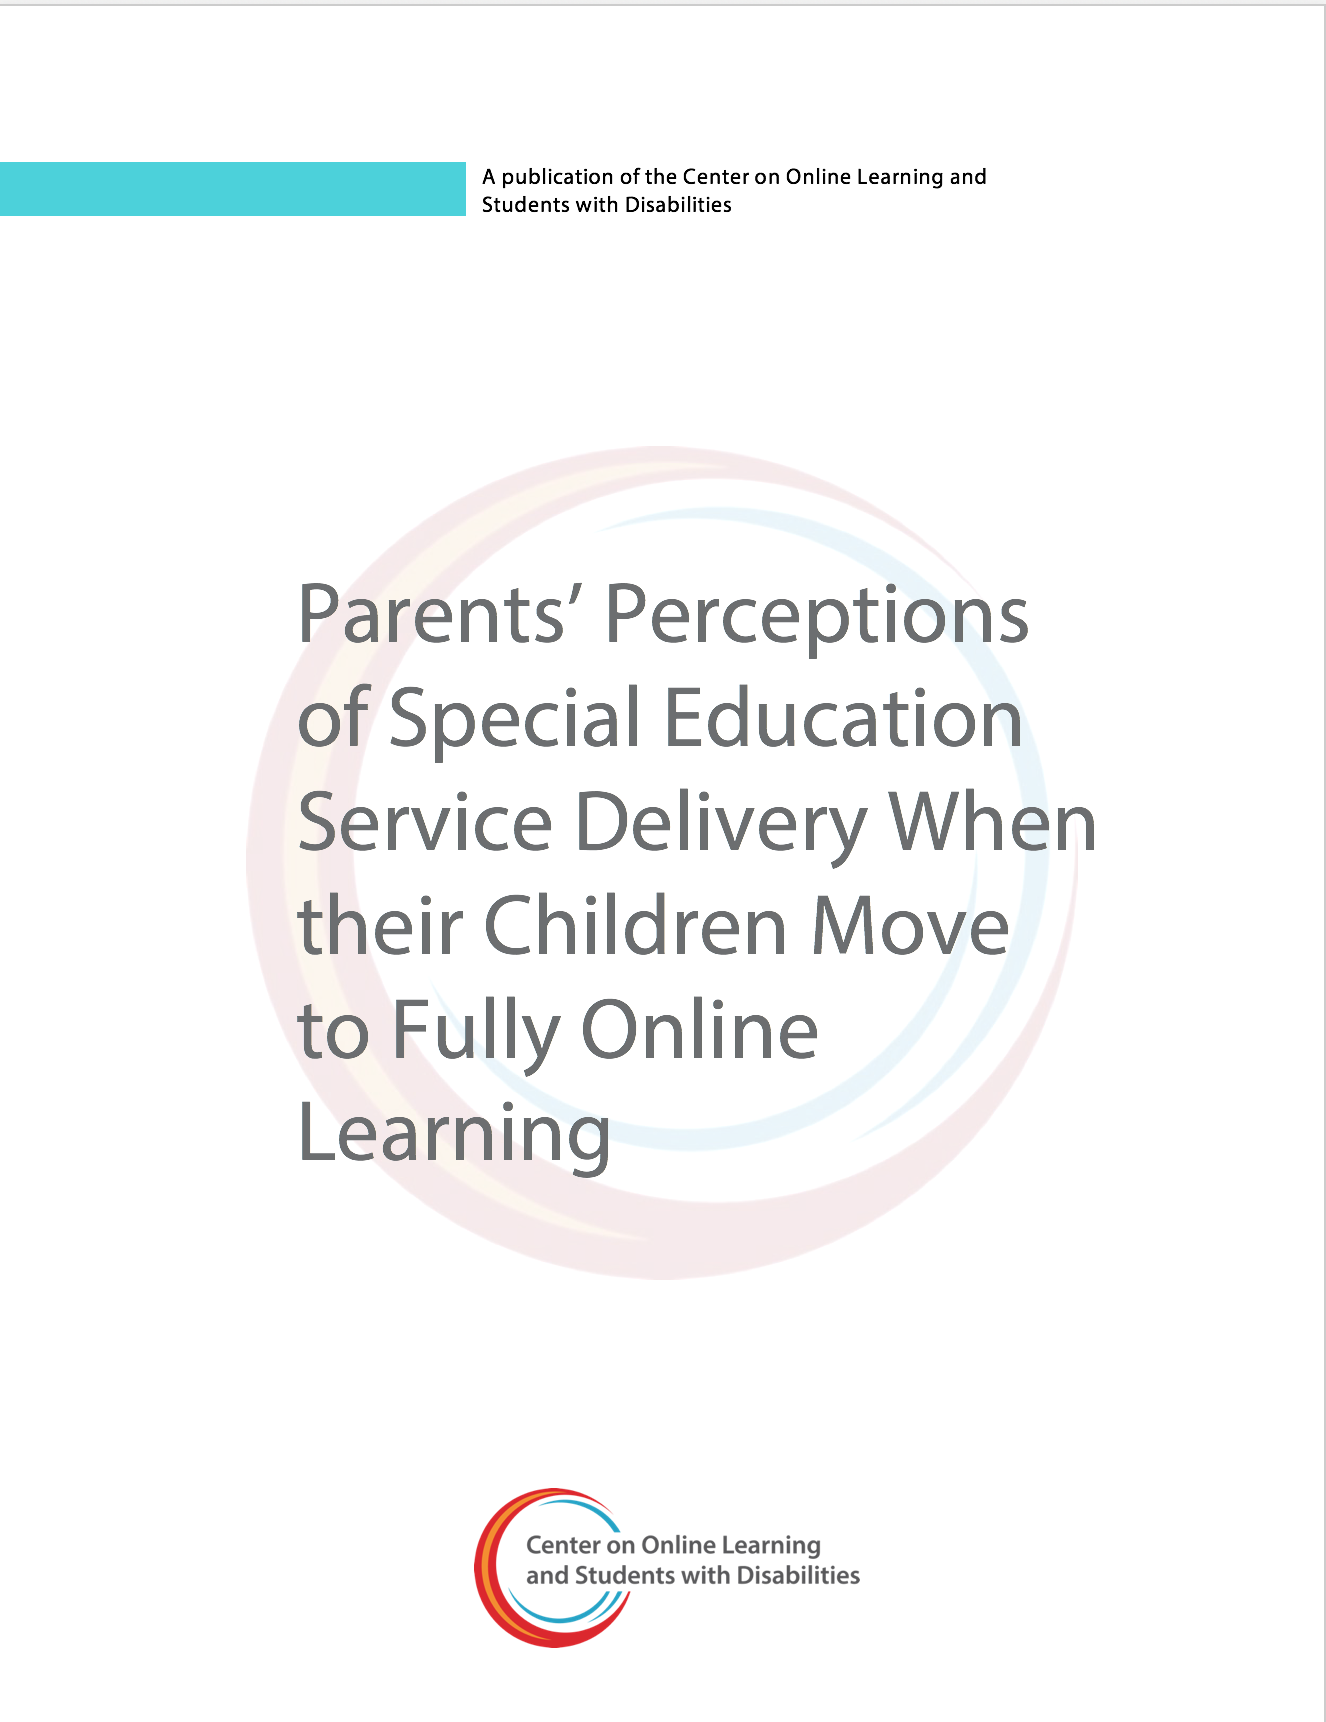 Parents' Perceptions Of Special Education Service Delivery When Their Children Move To Fully Online Learning